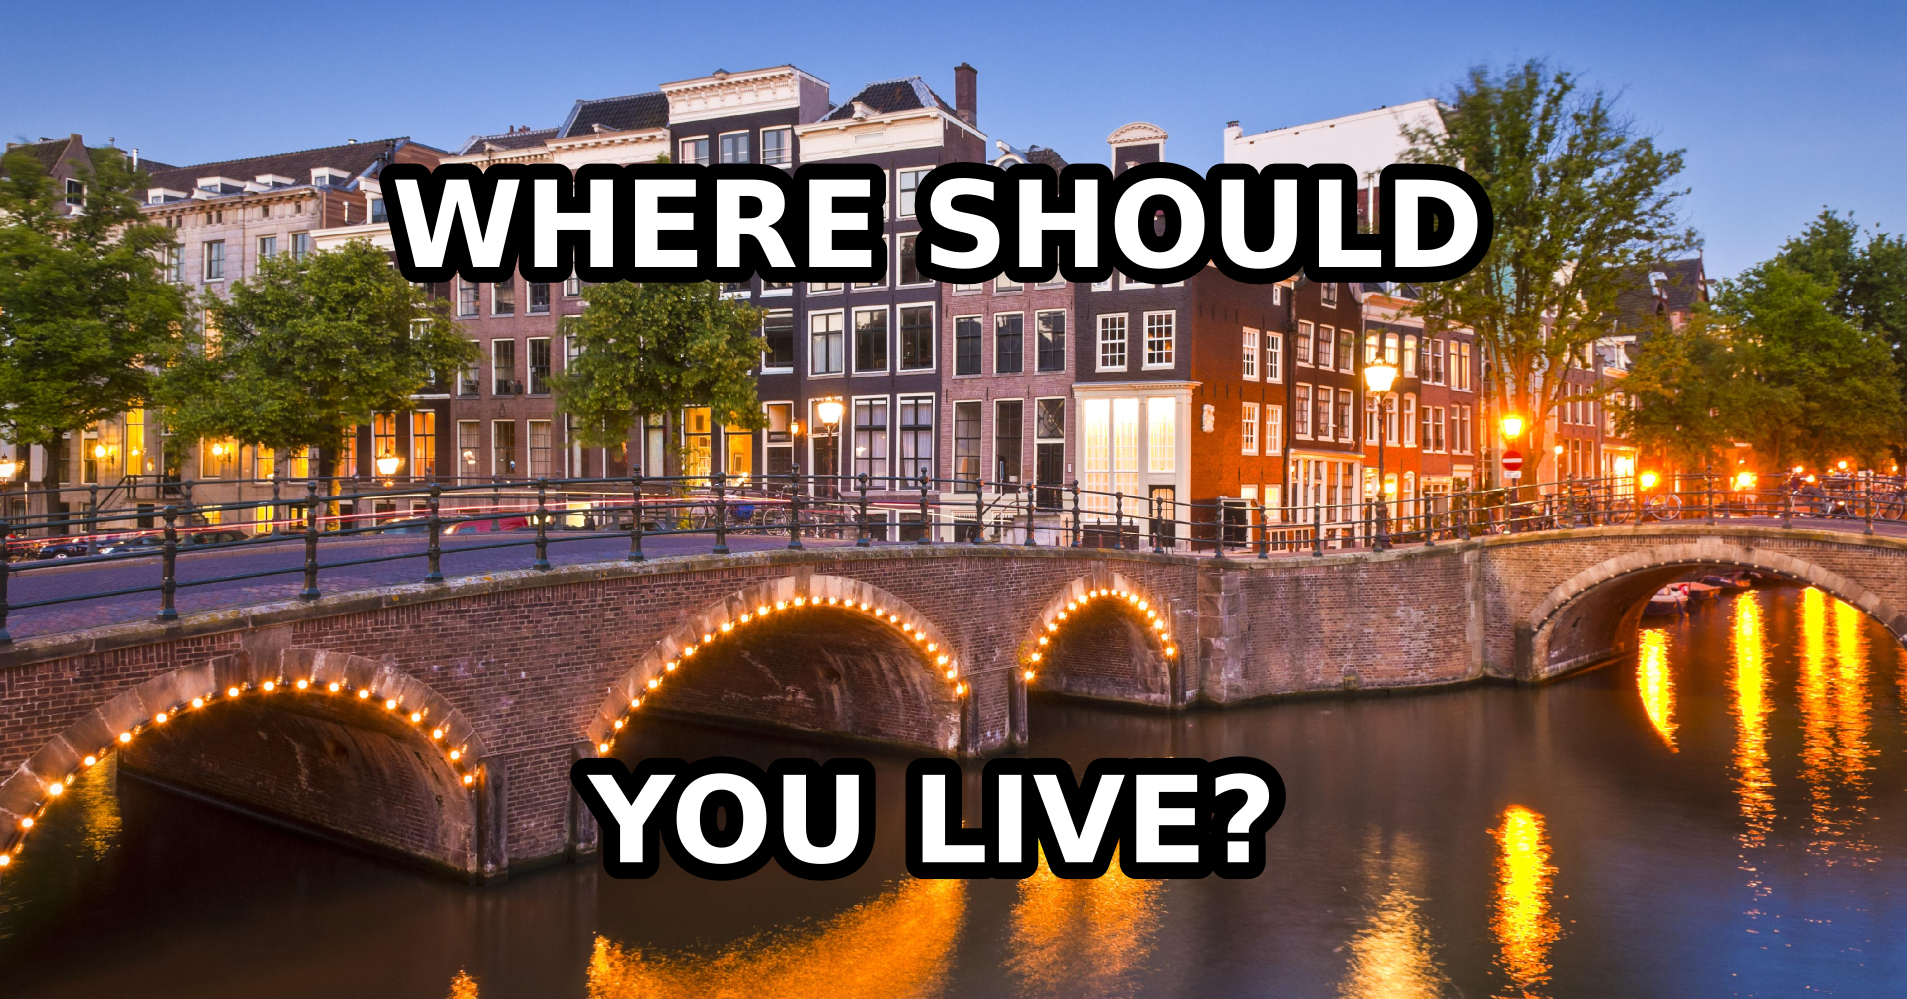 I Got 'Amsterdam' - Which City Should You Live In?